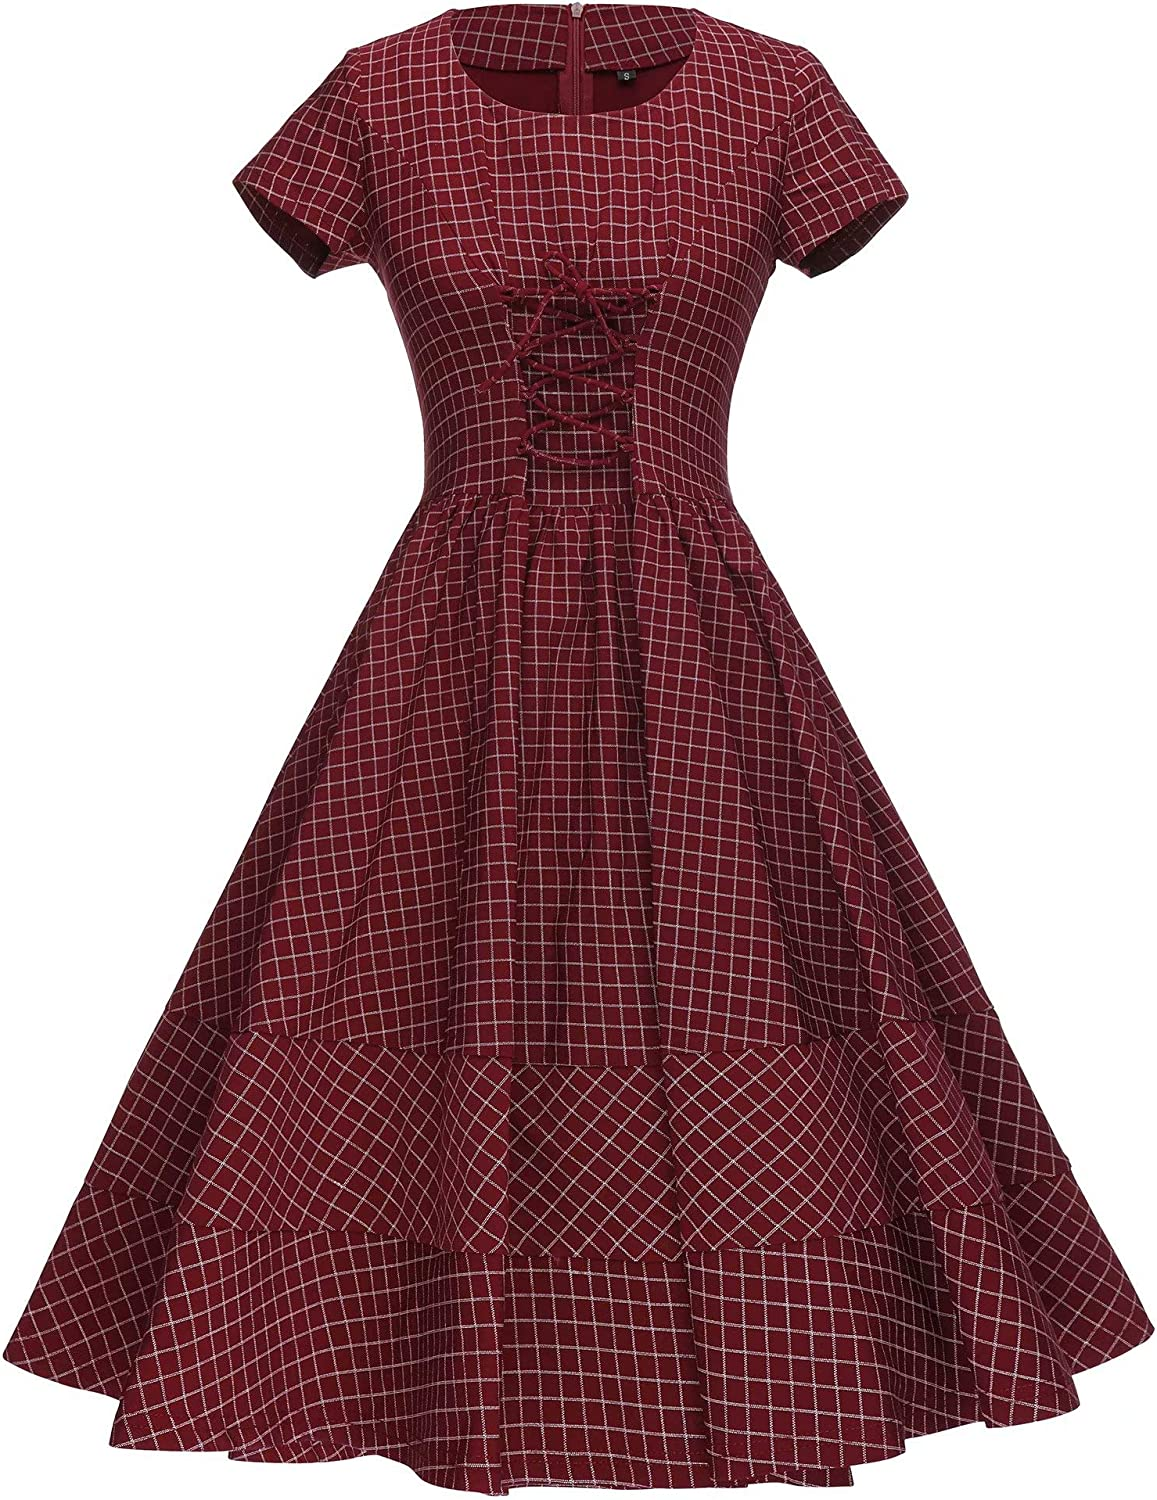 1940s Day Dress Styles, House Dresses GownTown Womens 1950s Vintage Plaid Swing Stretchy Dress $26.99 AT vintagedancer.com